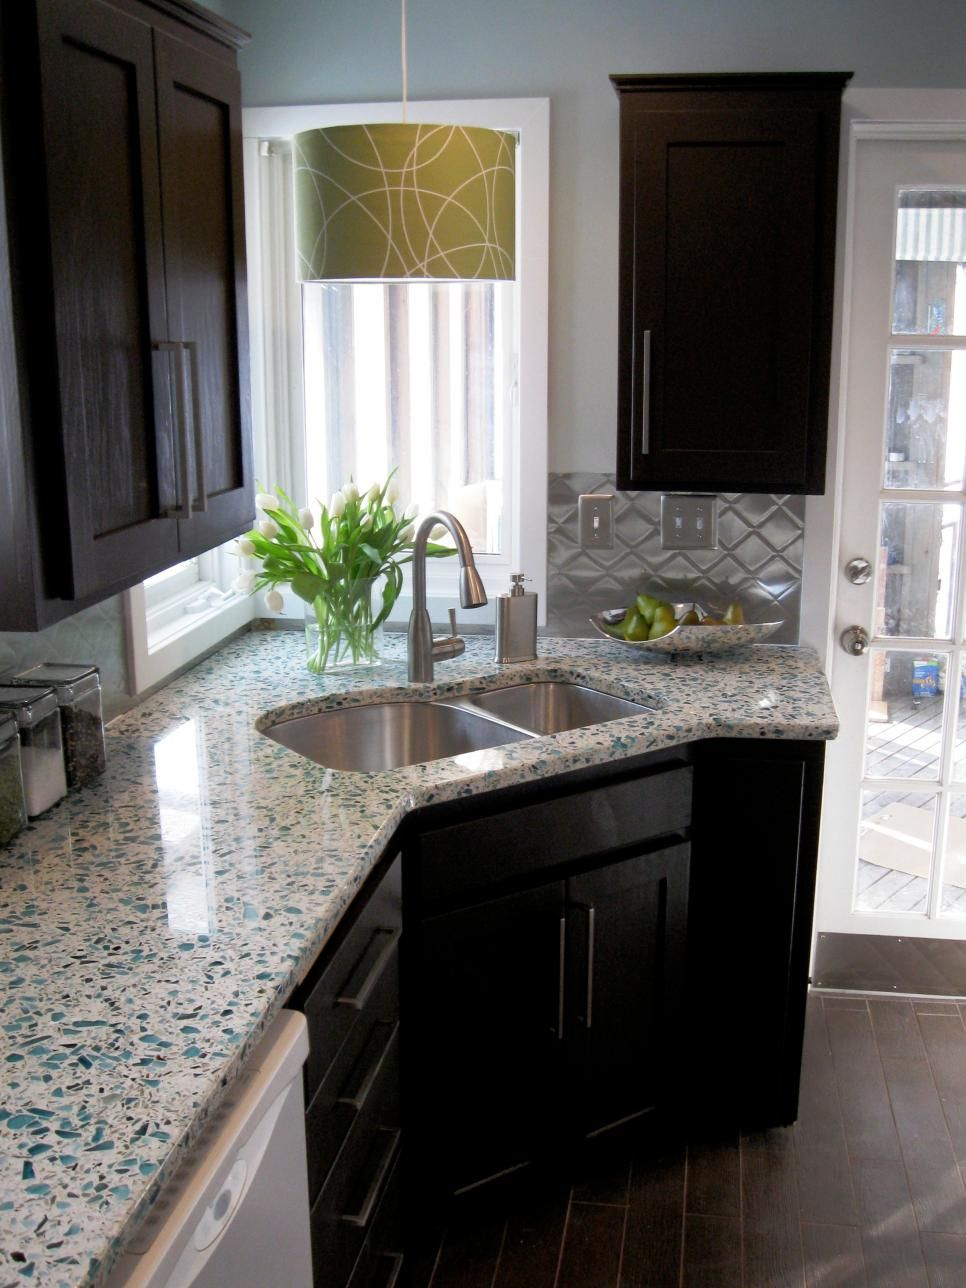 Budget Friendly Before And After Kitchen Makeovers. Glass CountertopsBacksplash  Dark CabinetsRecycled ...